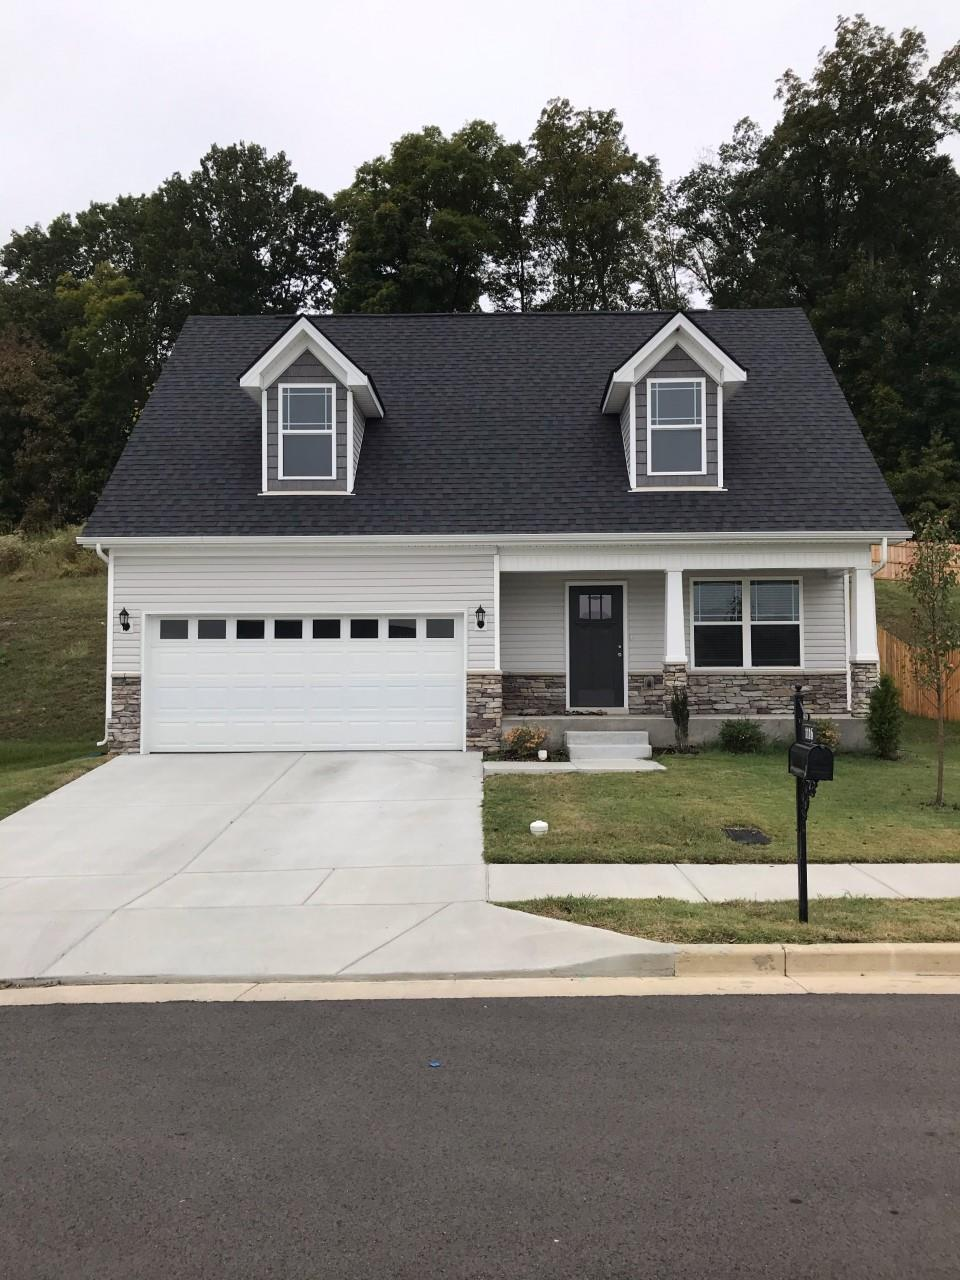 1116 Lady Nashville Dr, Hermitage in Davidson County County, TN 37076 Home for Sale